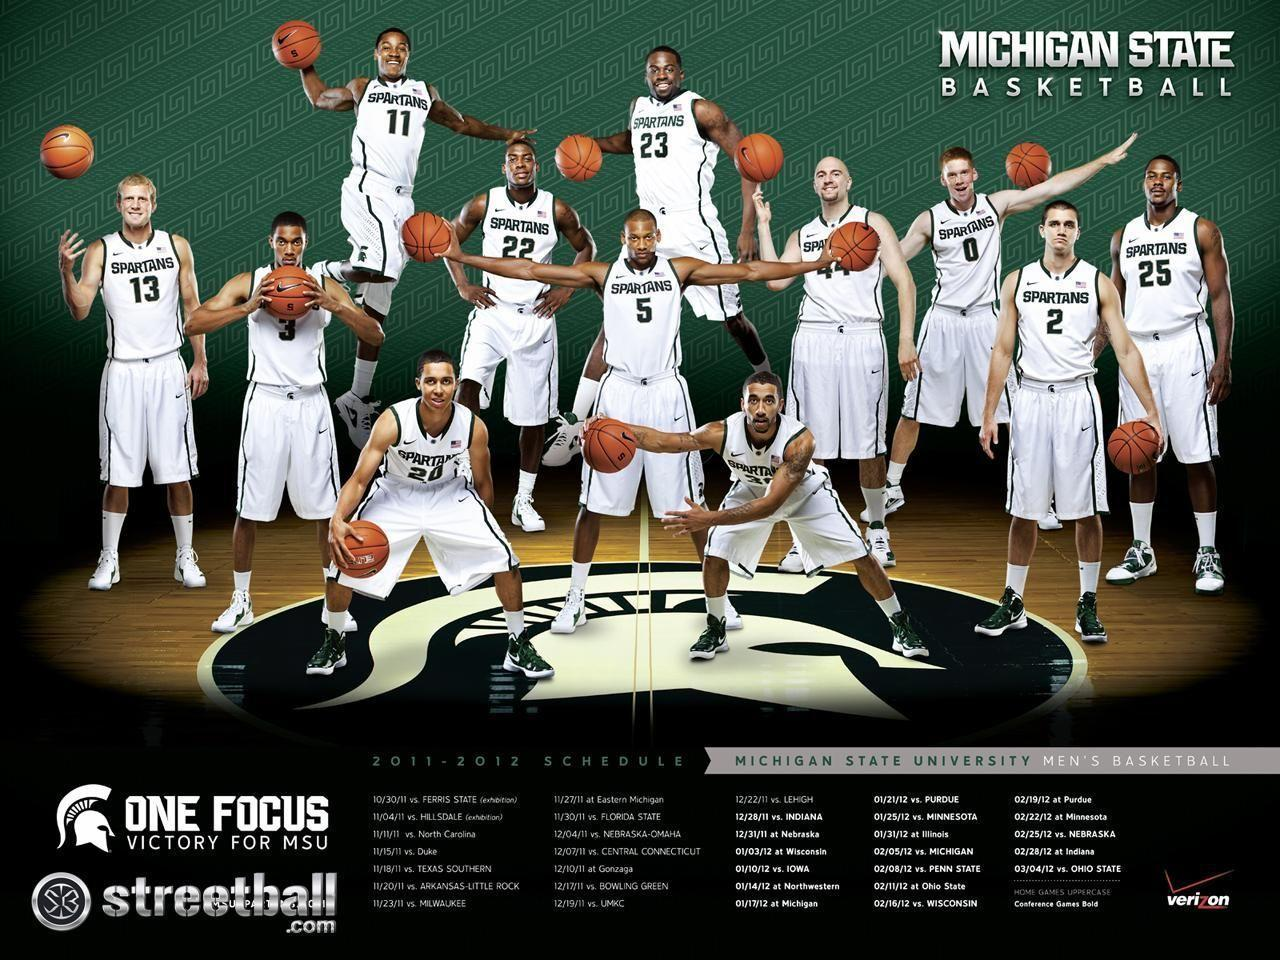 Michigan State University Wallpapers: College Basketball Wallpapers